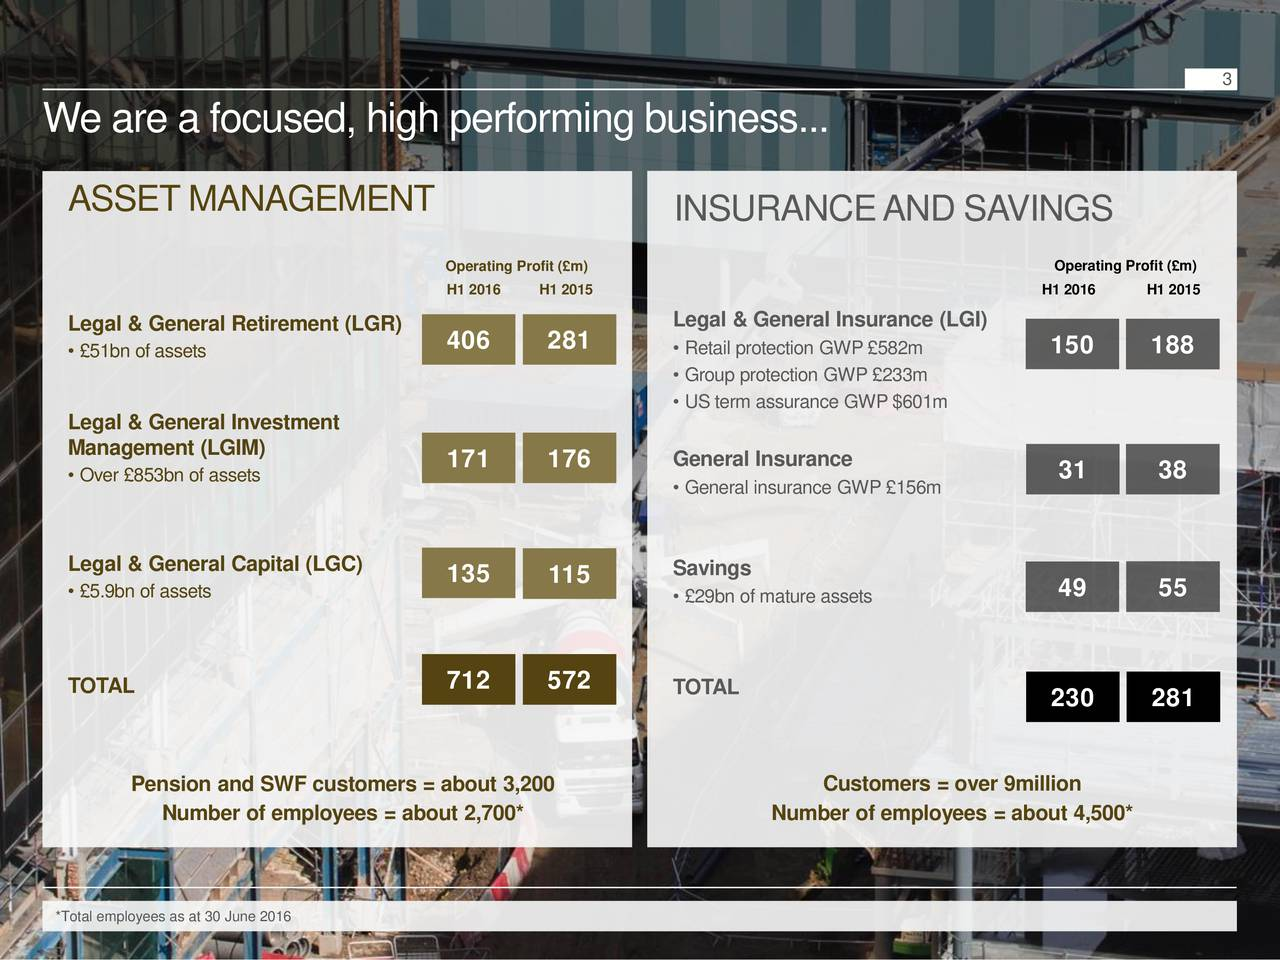 We are a focused, high performing business... ASSET MANAGEMENT INSURANCEAND SAVINGS Operating Profit (m) Operating Profit (m) H1 2016 H1 2015 H1 2016 H1 2015 Legal & General Retirement (LGR) Legal & General Insurance (LGI) 51bn of assets 406 281  Retail protection GWP 582m 150 188 Group protection GWP 233m US term assurance GWP $601m Legal & General Investment Management (LGIM) 171 176 General Insurance Over 853bn of assets 31 38 General insurance GWP 156m Legal & General Capital (LGC) Savings 5.9bn of assets 135 115 49 55 29bn of mature assets TOTAL 712 572 TOTAL 230 281 Pension and SWF customers = about 3,200 Customers = over 9million Number of employees = about 2,700* Number of employees = about 4,500* *Total employees as at 30 June 2016